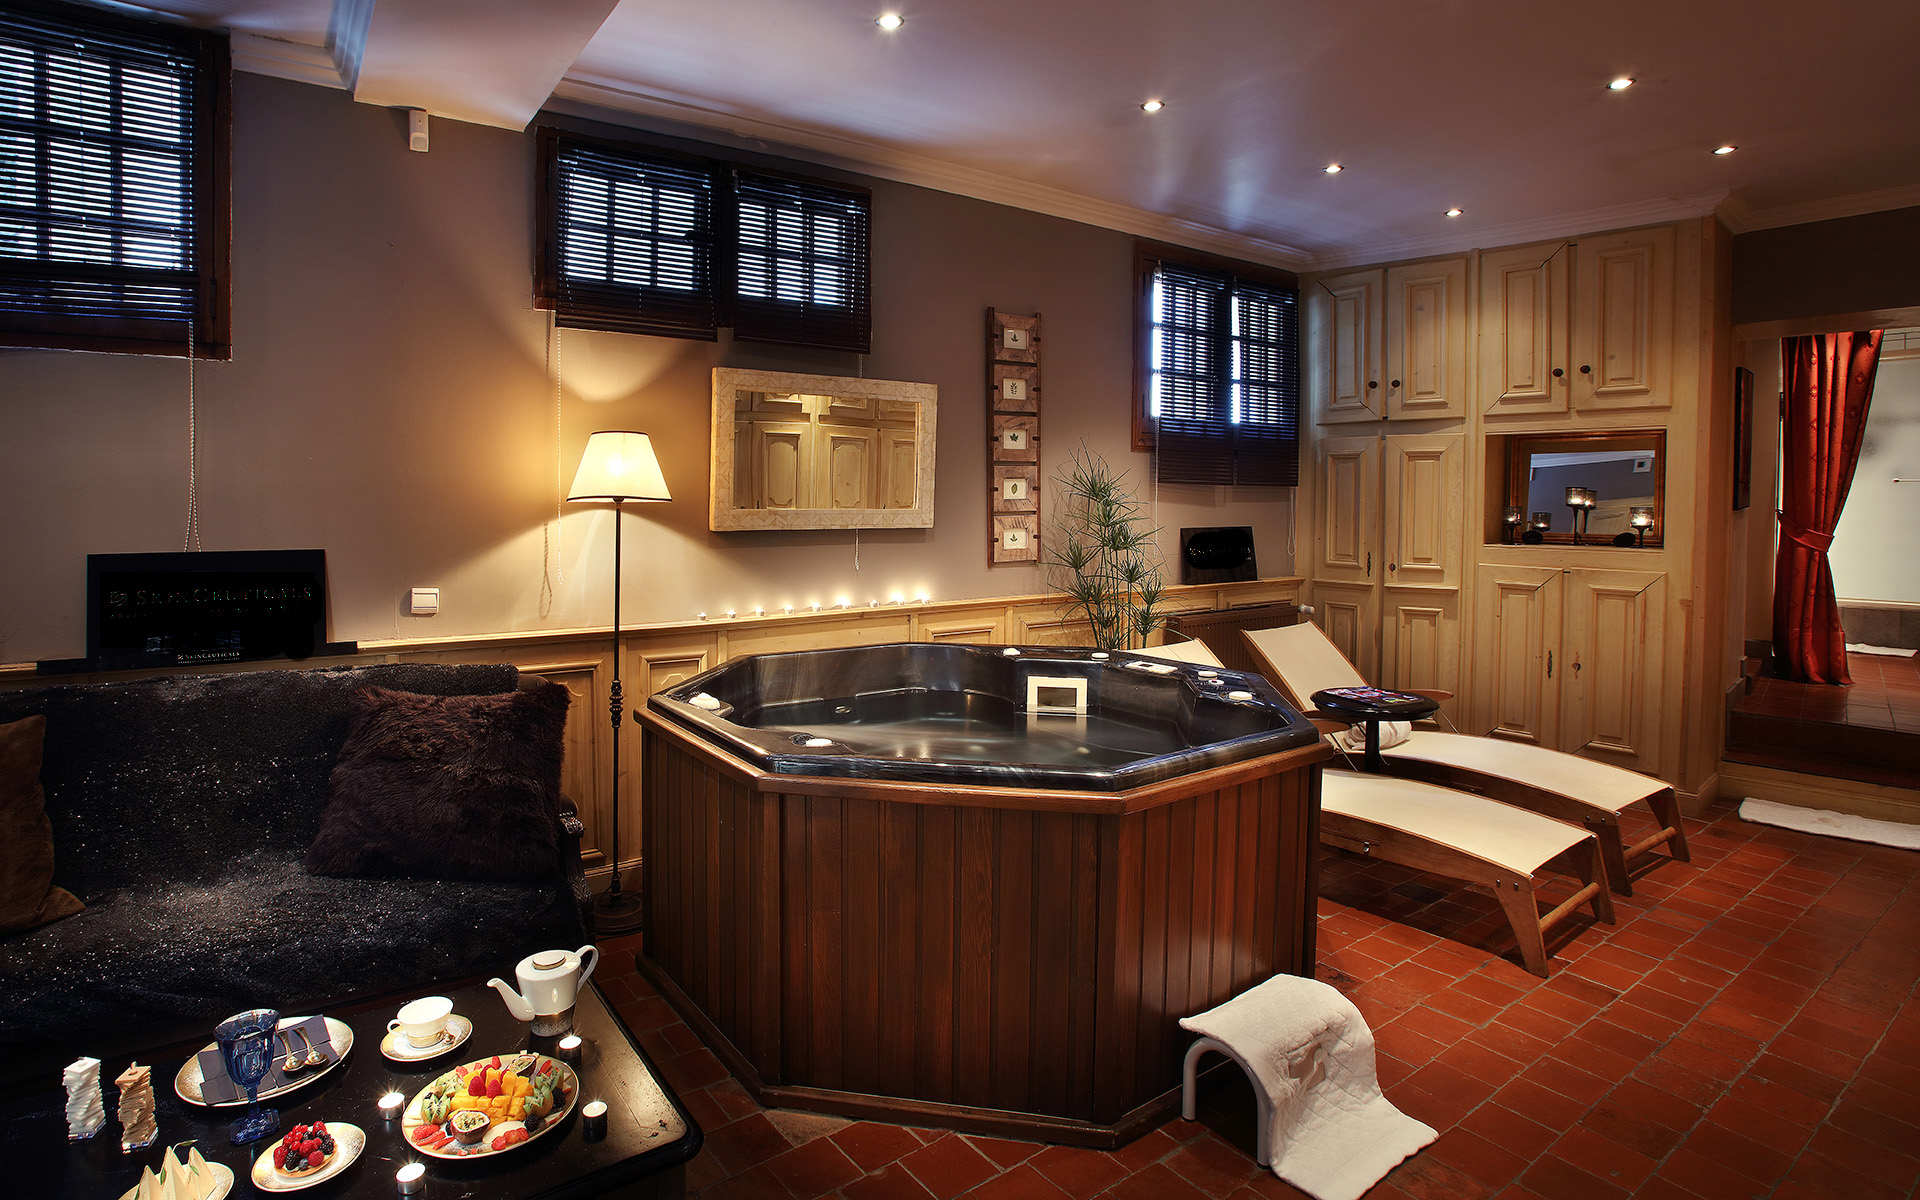 290/Hotel Saint Joseph/SPA/Saint_joseph_courchevel_spa1.jpg